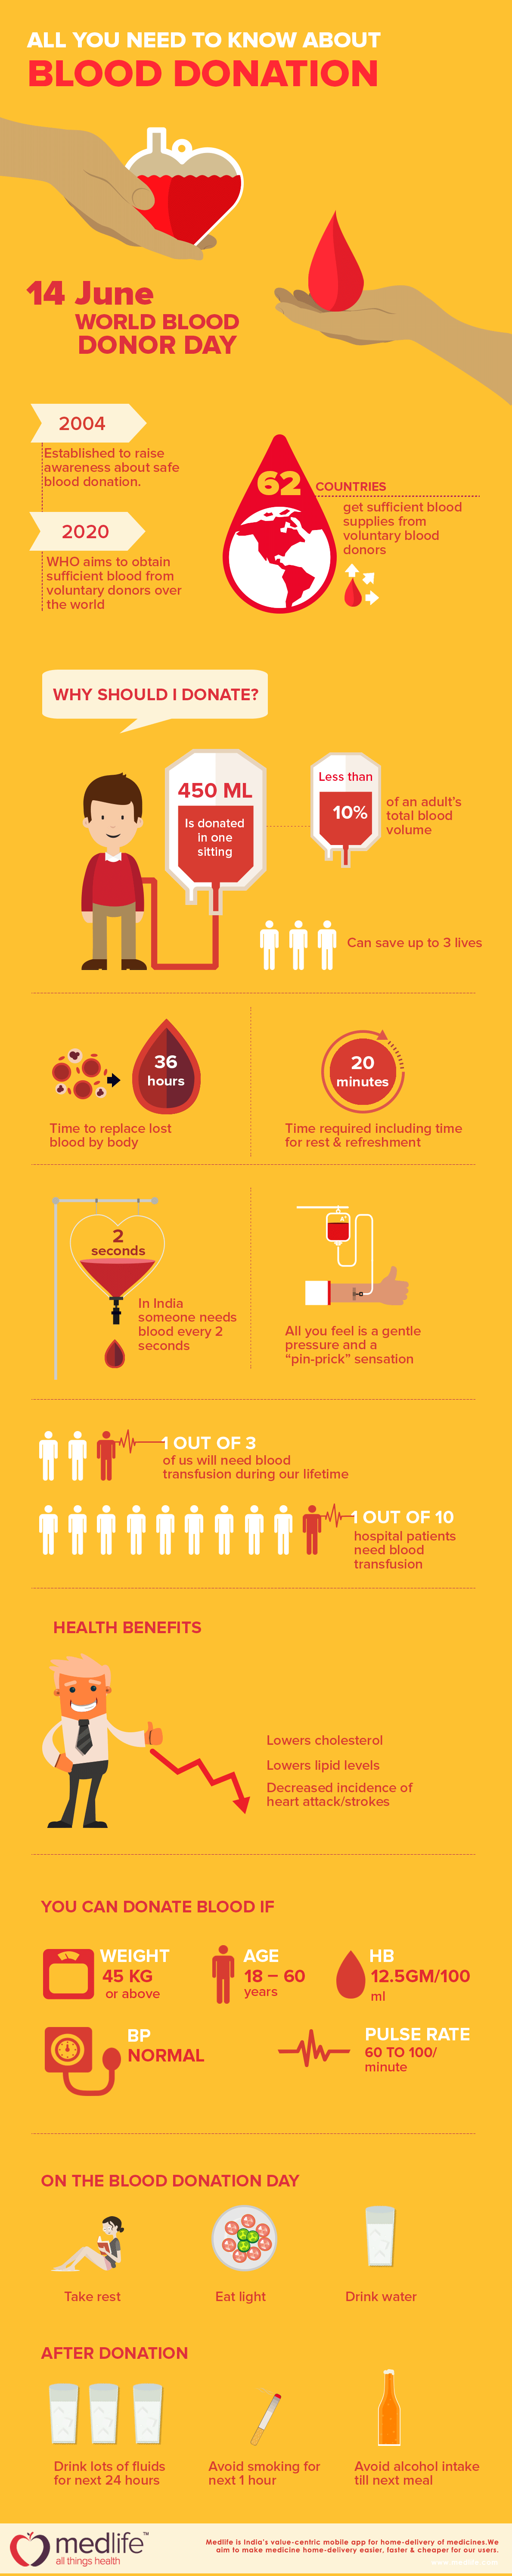 Infographic: All you need to know about blood donation